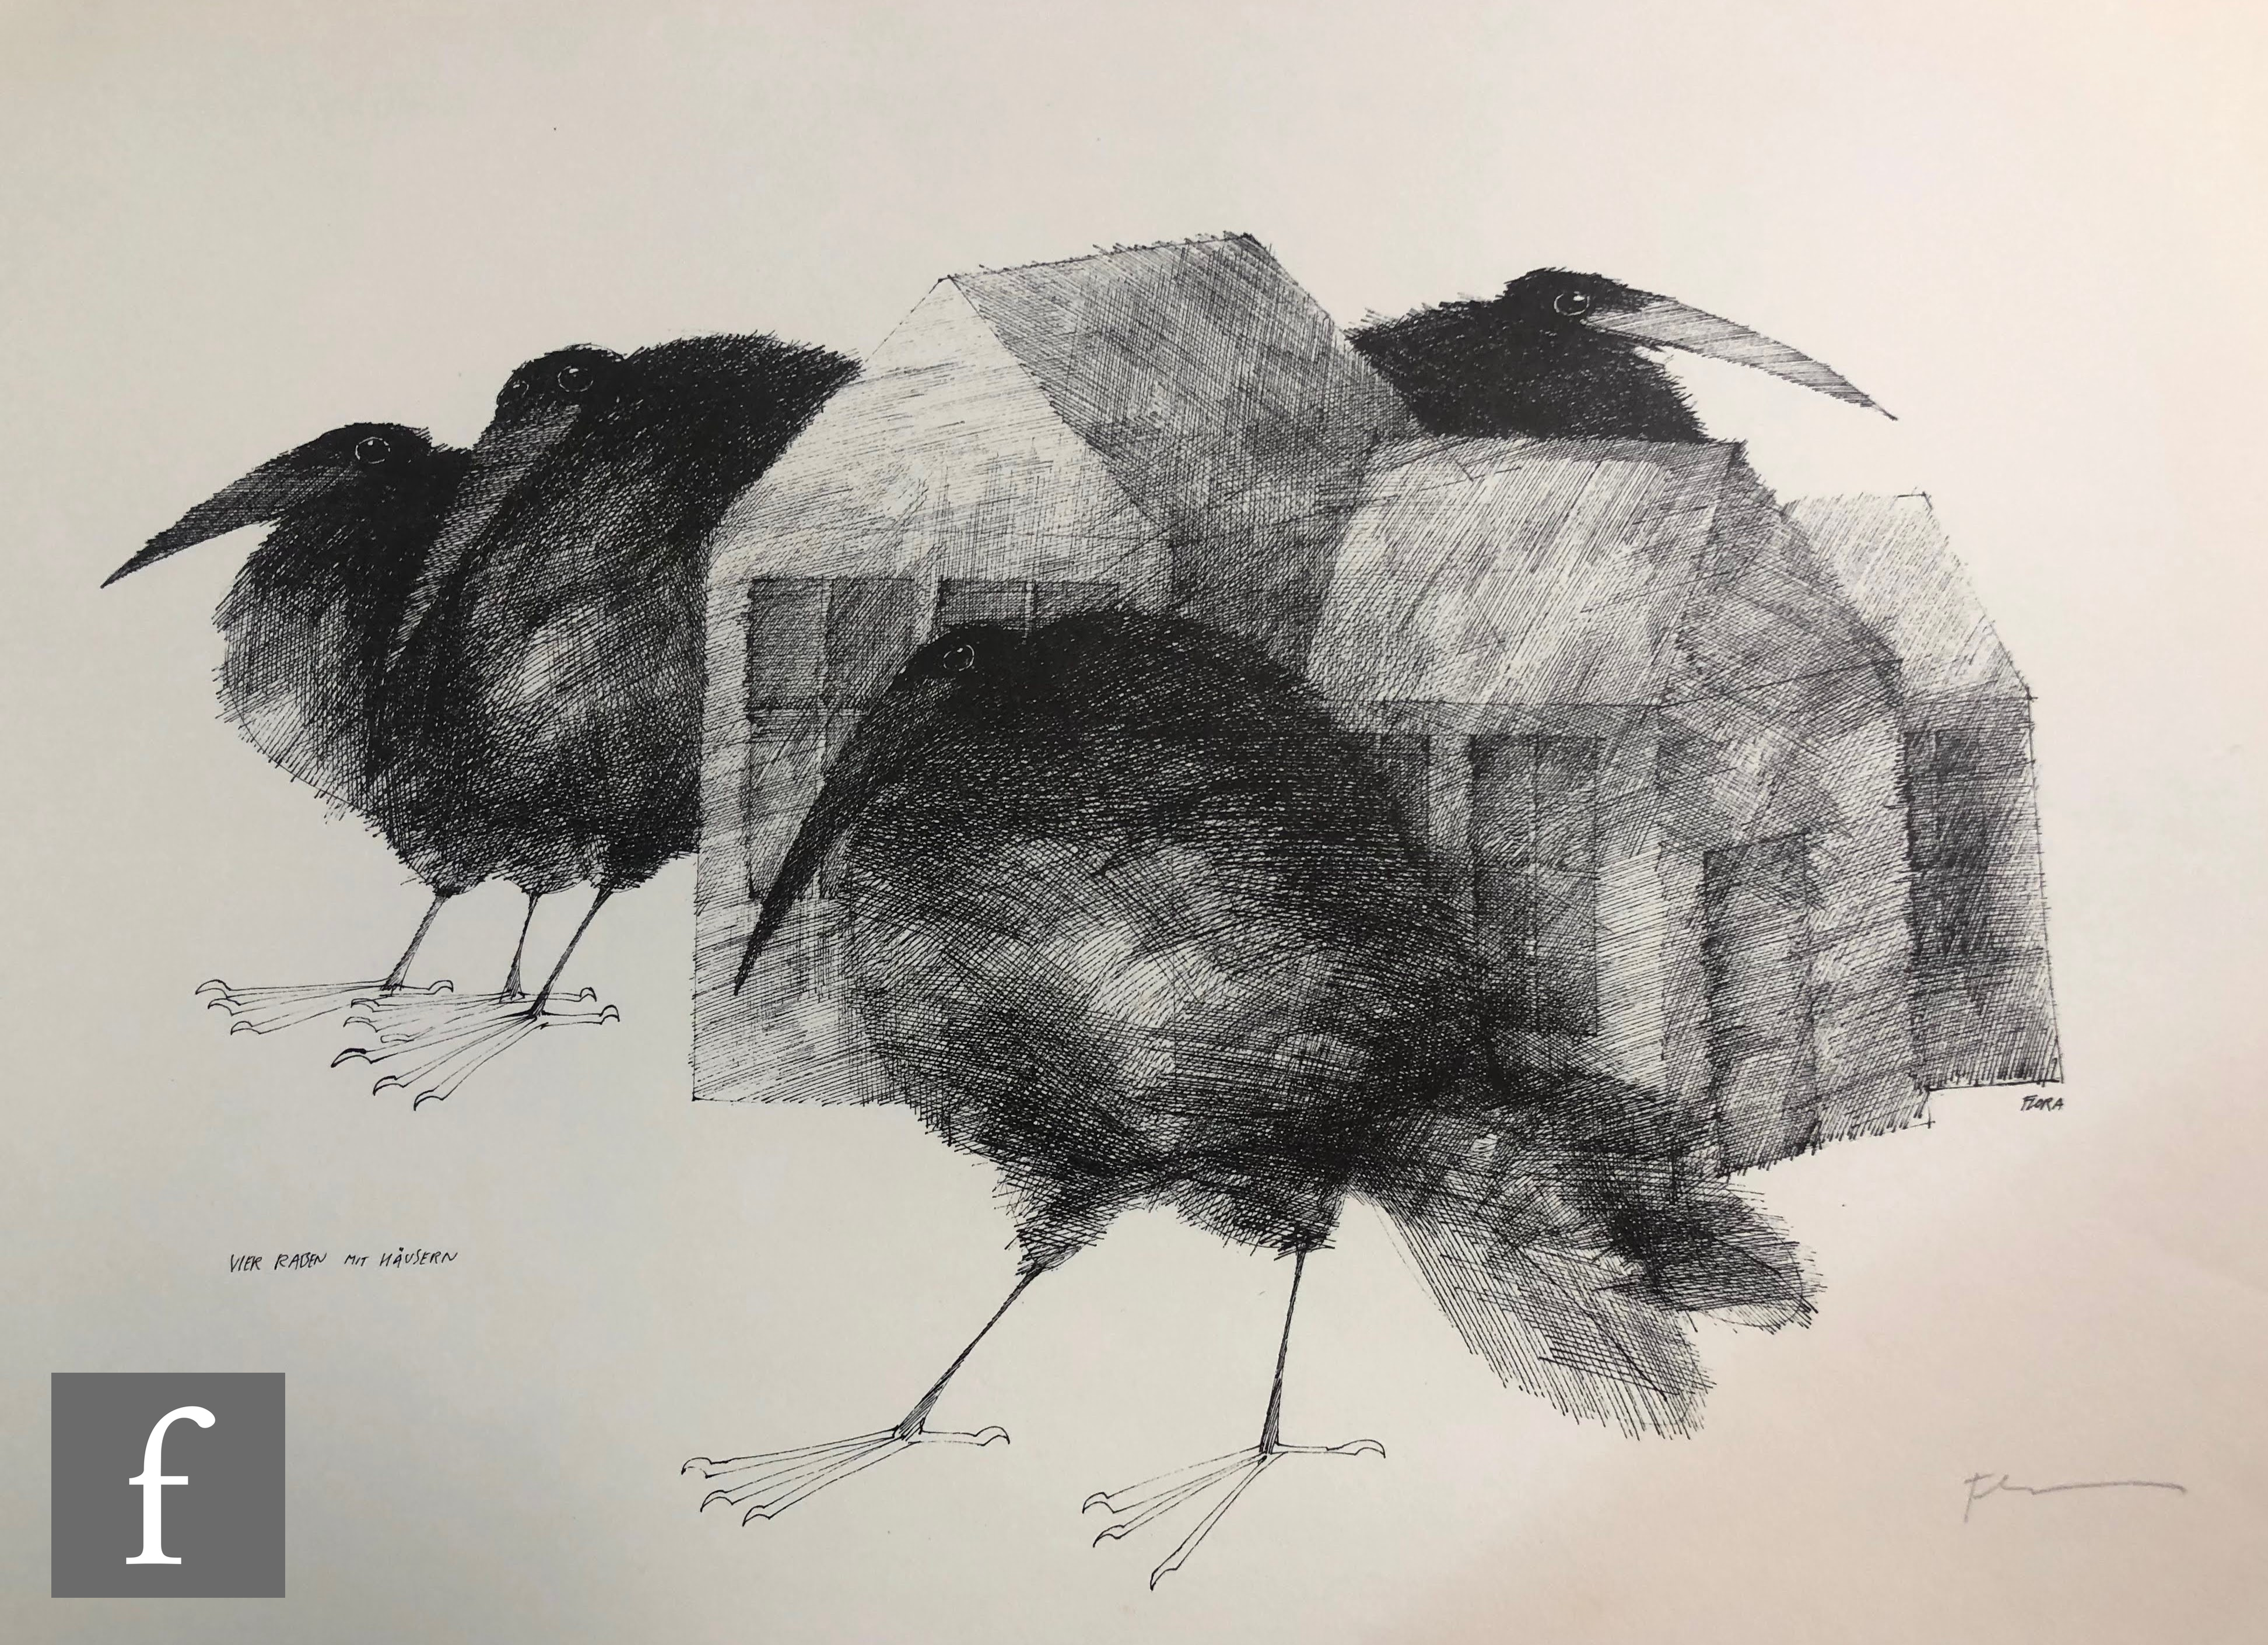 AFTER PAUL FLORA - Die Raben (The Ravens), a set of lithographs in original folder signed and - Image 3 of 4